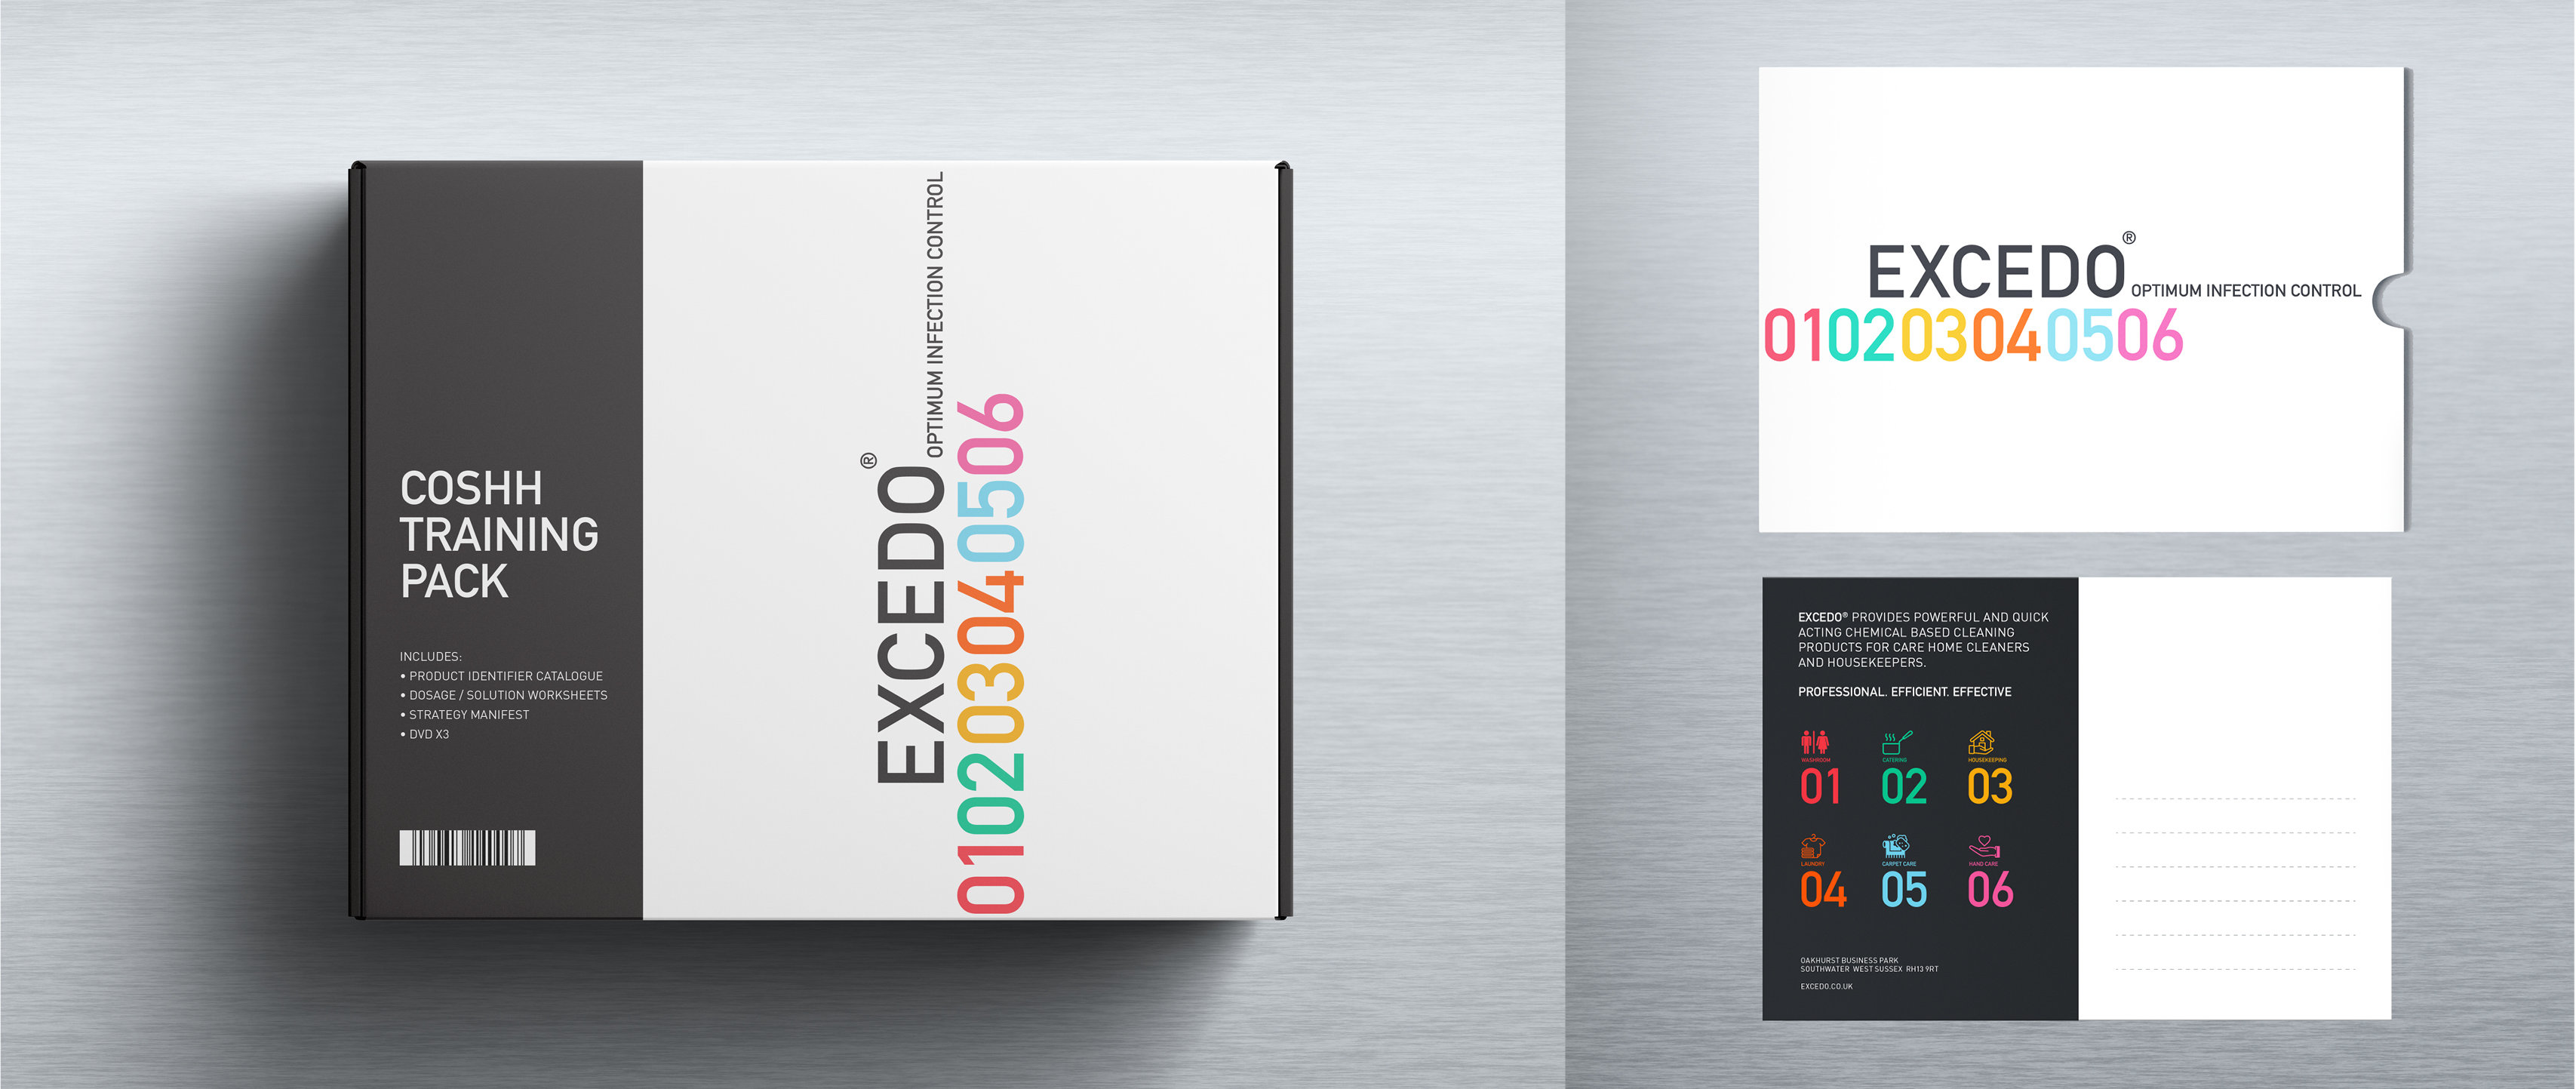 brand design and packaging for healthcare consumables organisation